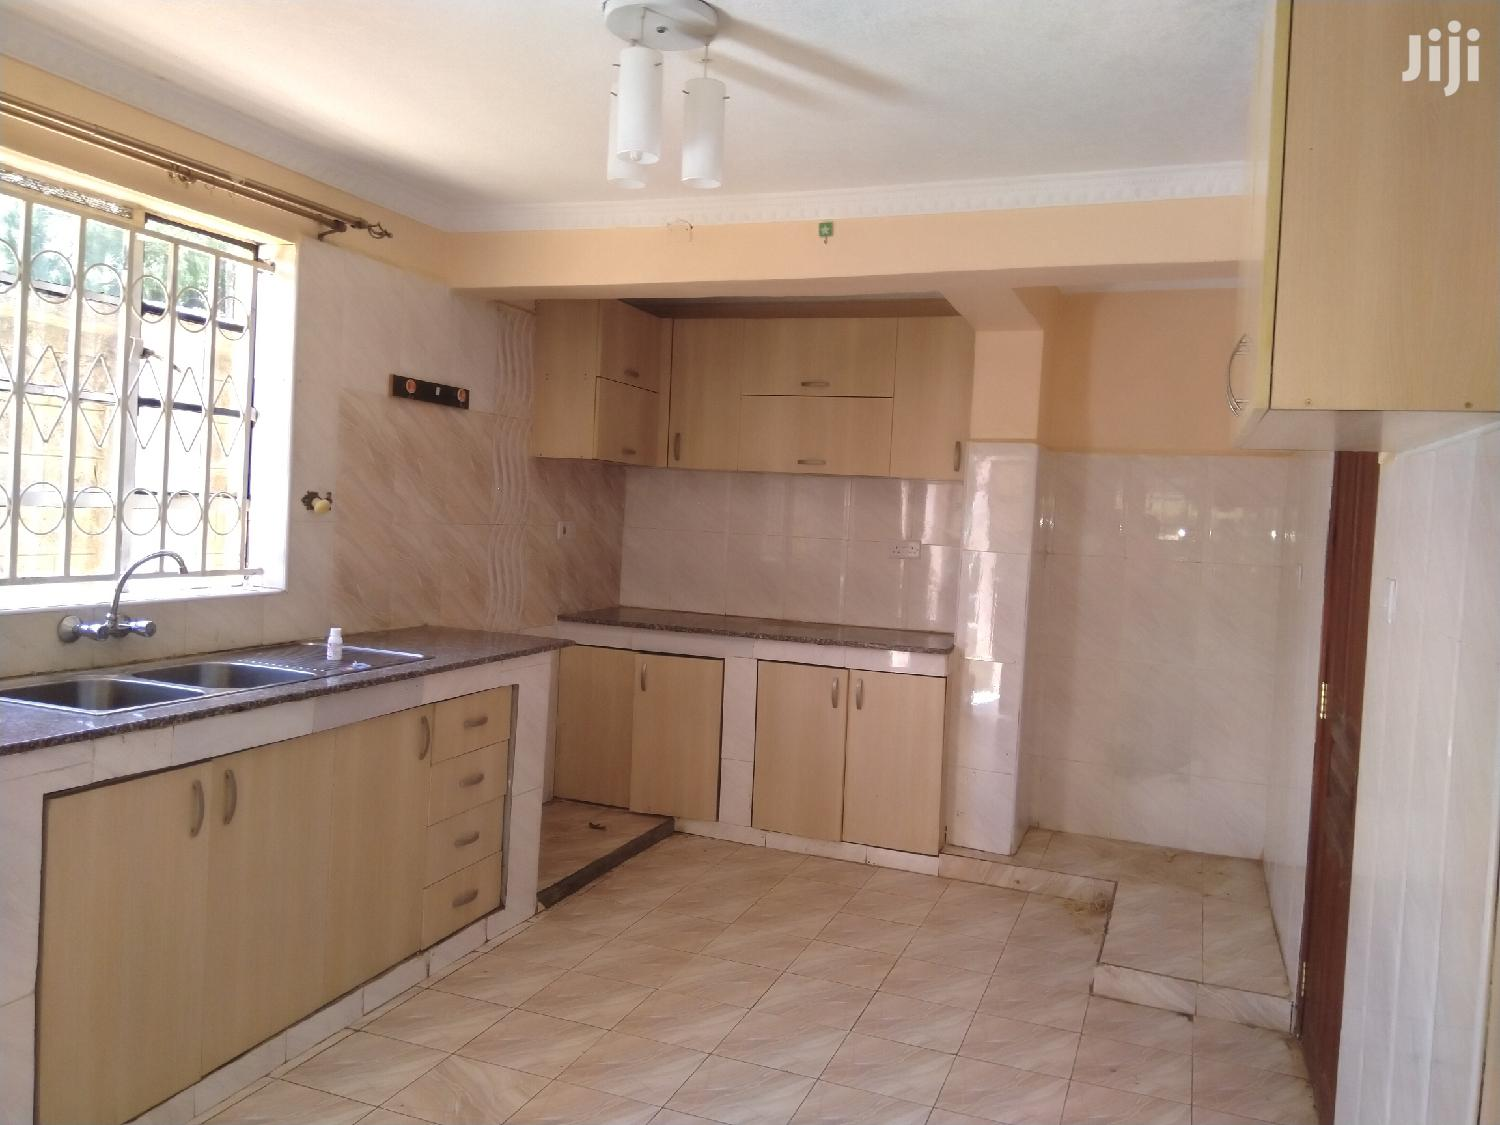 Archive: An Elegant 4 Bedroom All Ensuite Maisonette With a Sq in Ongata Rongai